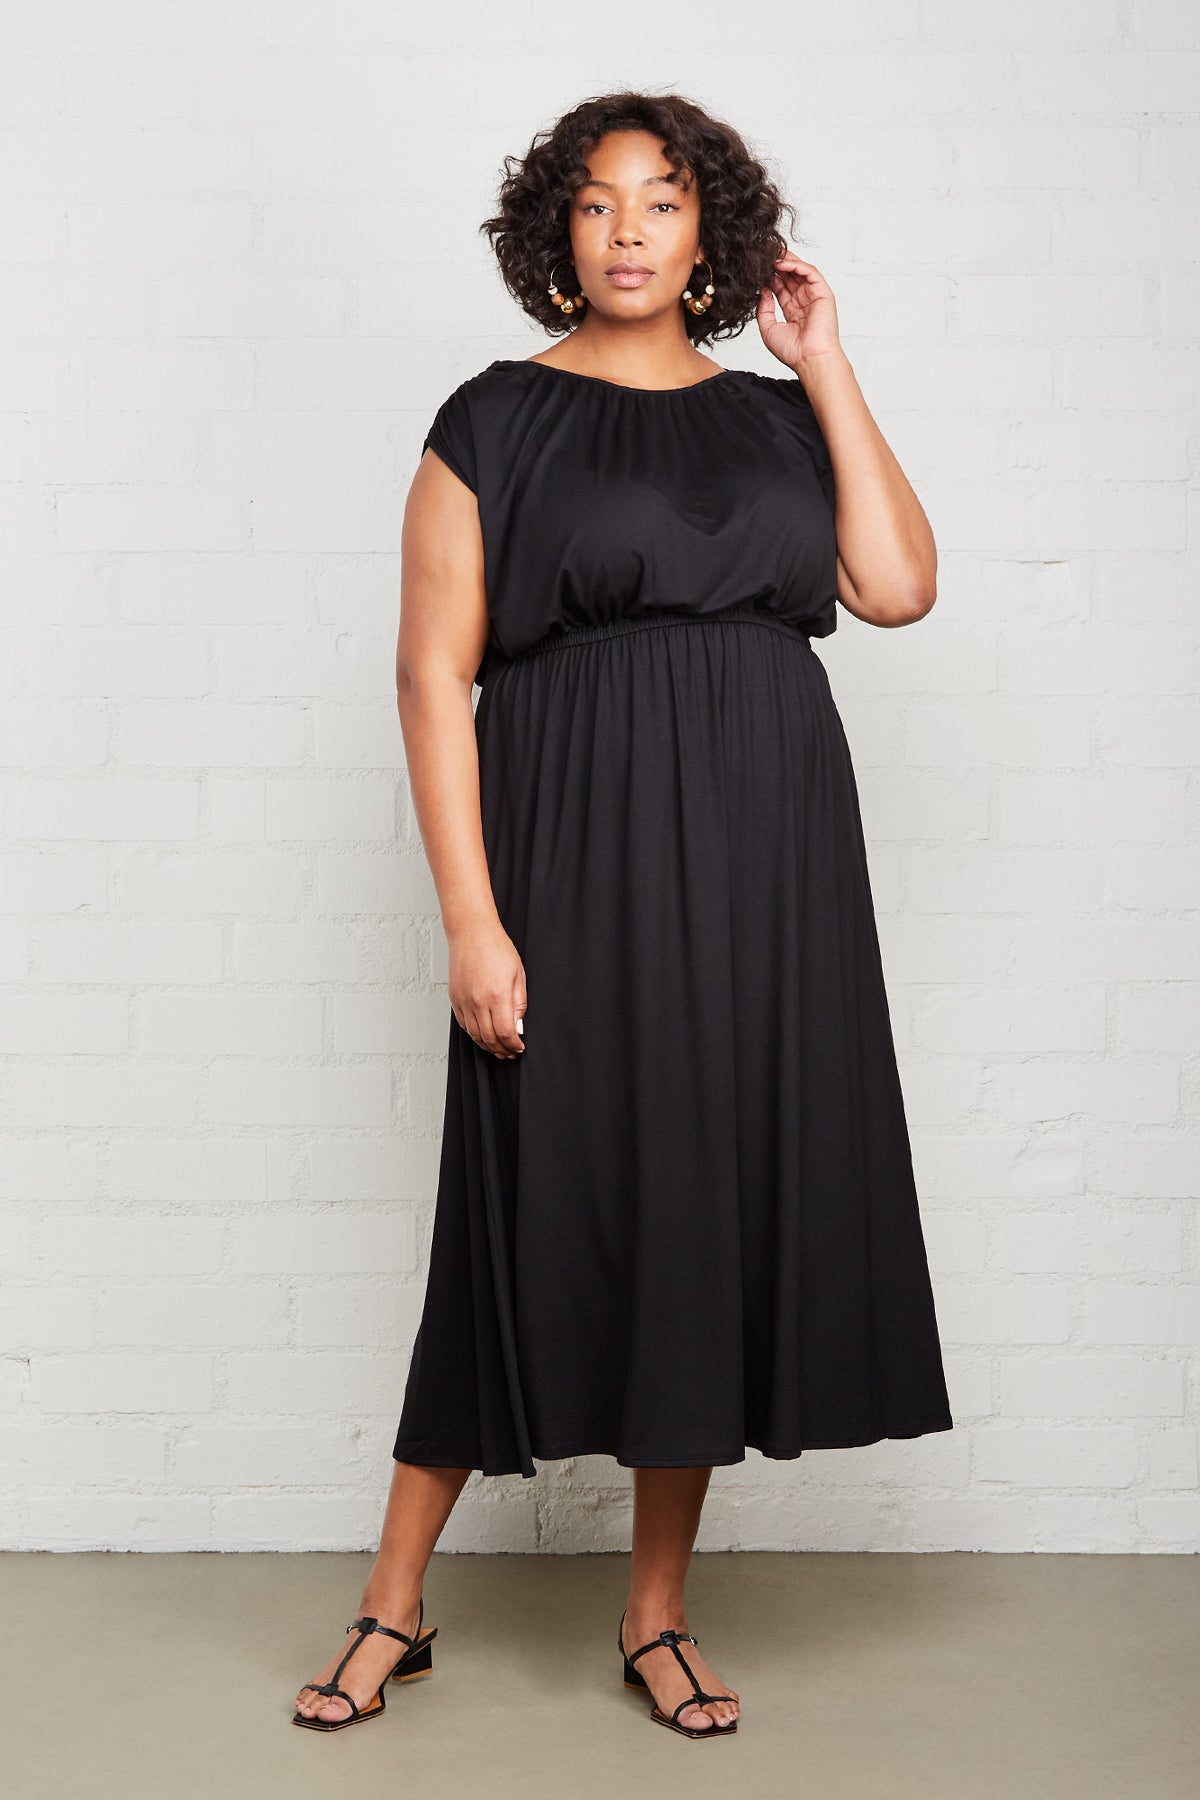 Barlow Dress - Black, Plus Size